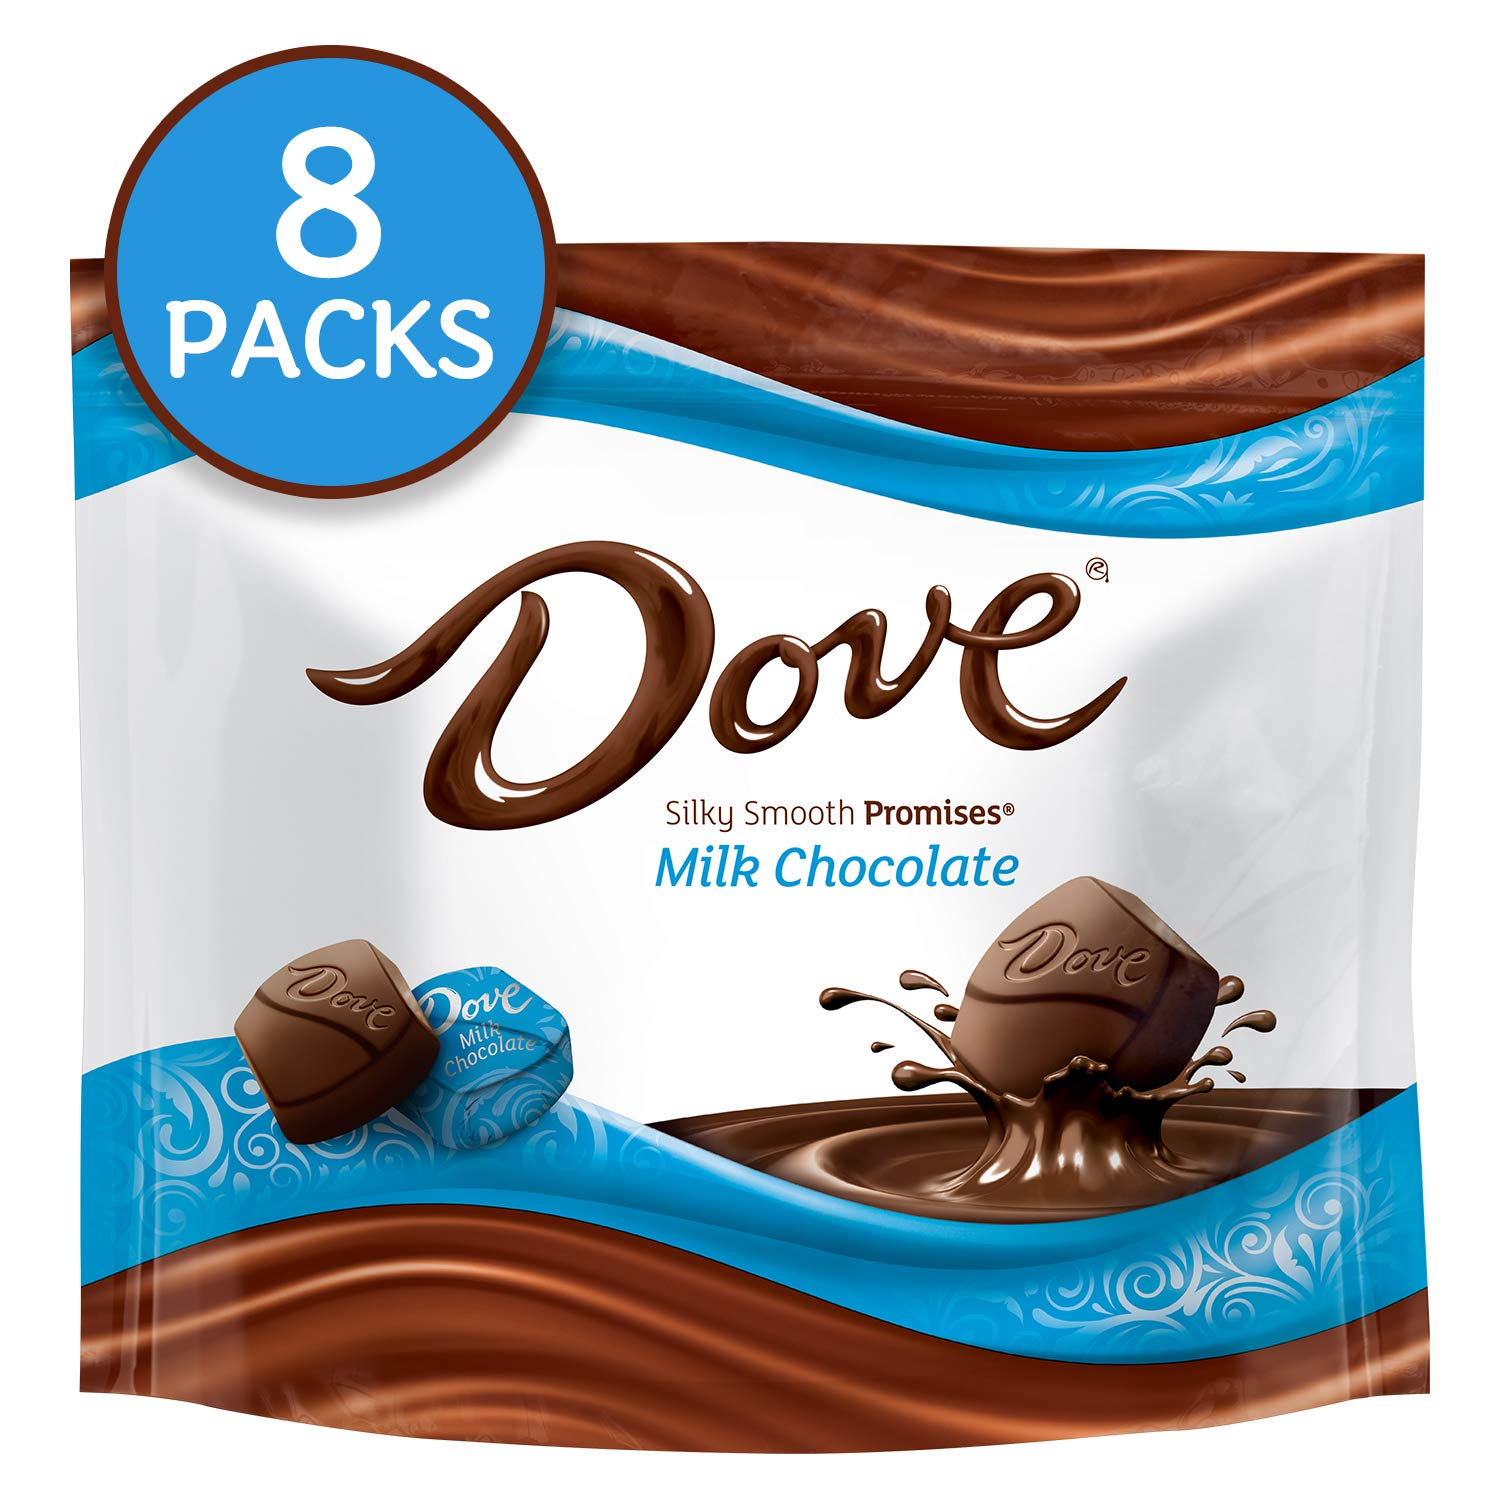 DOVE PROMISES Milk Chocolate Candy 8.46-Ounce Bag (Pack of 8)